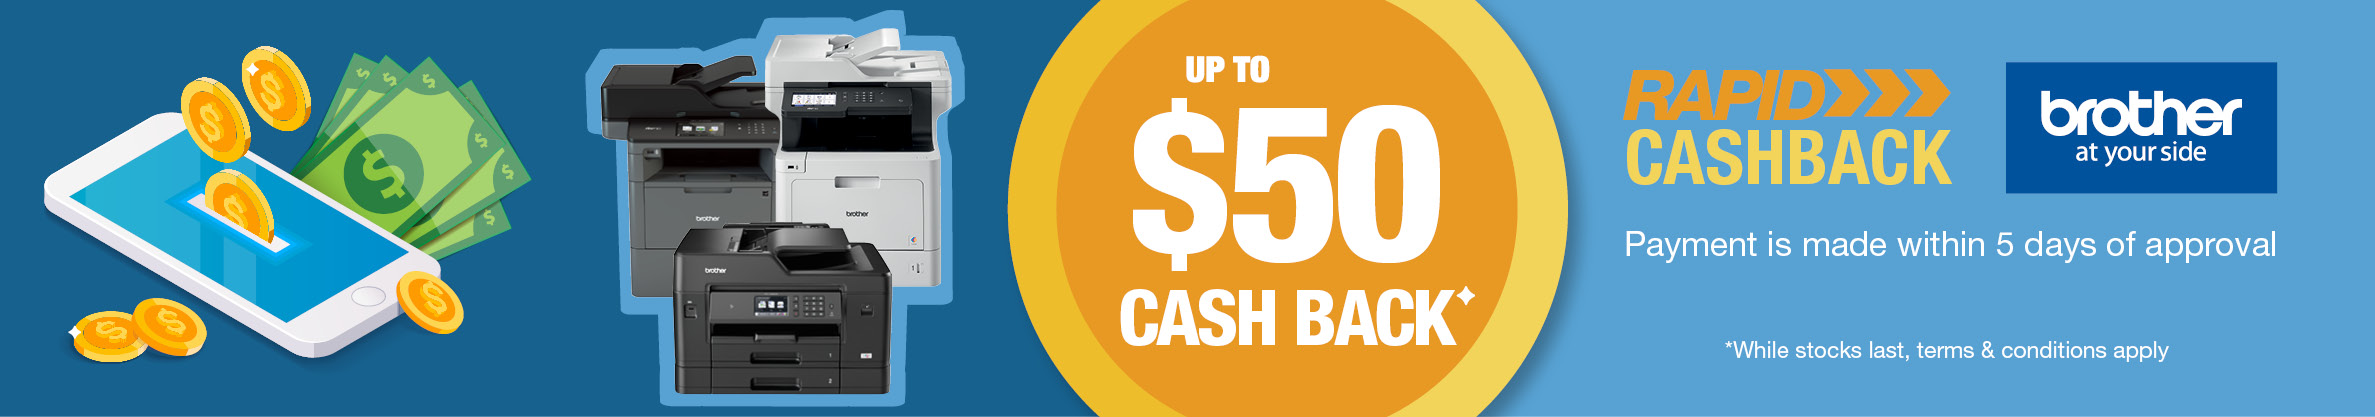 Brother up to $50 Cash Back on Selected Printers